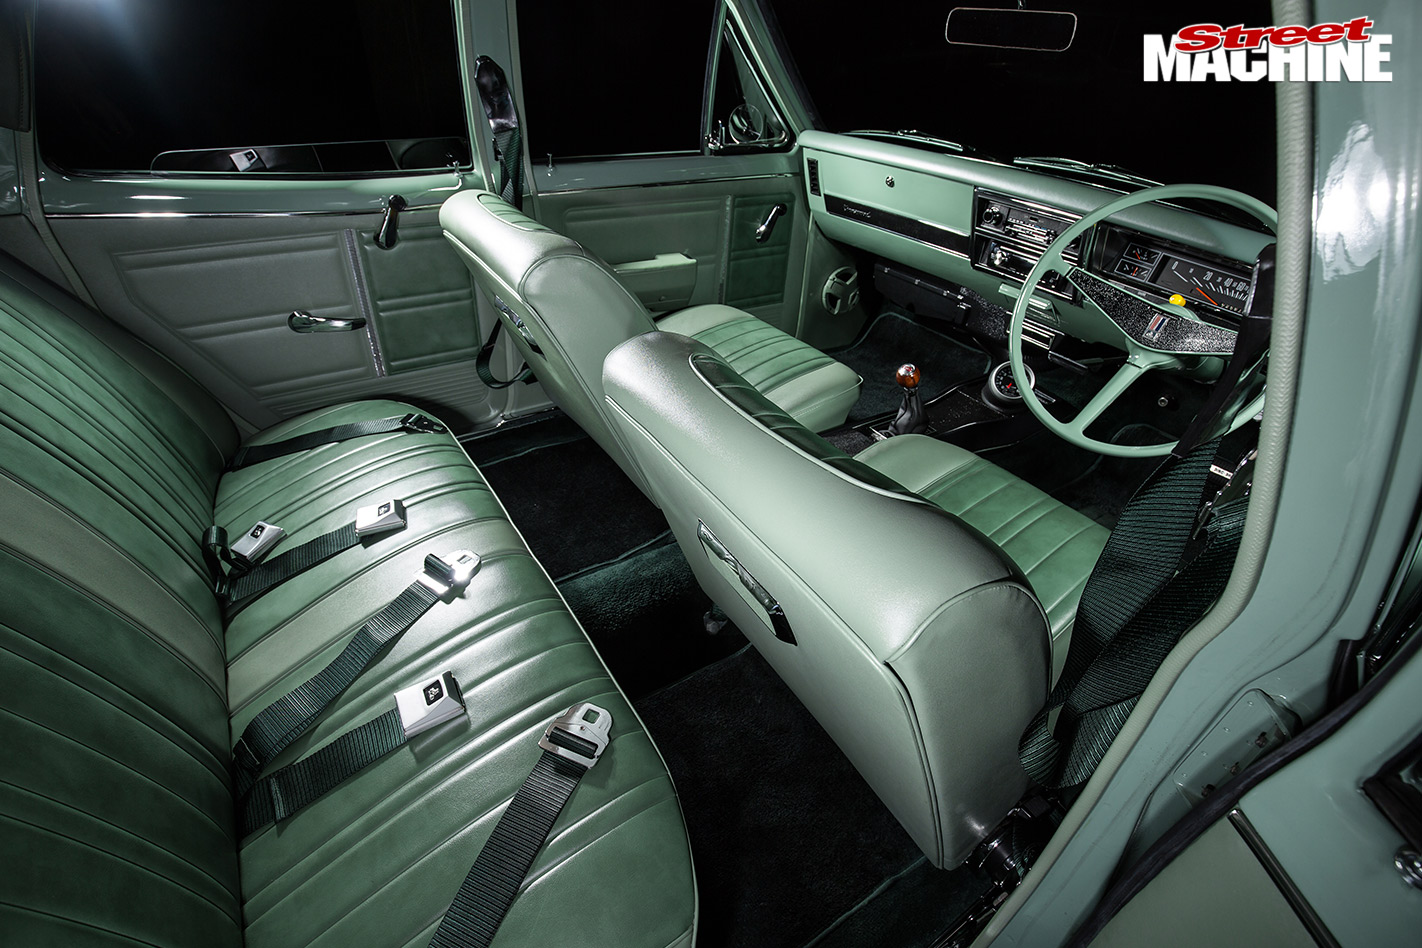 Holden HK wagon interior